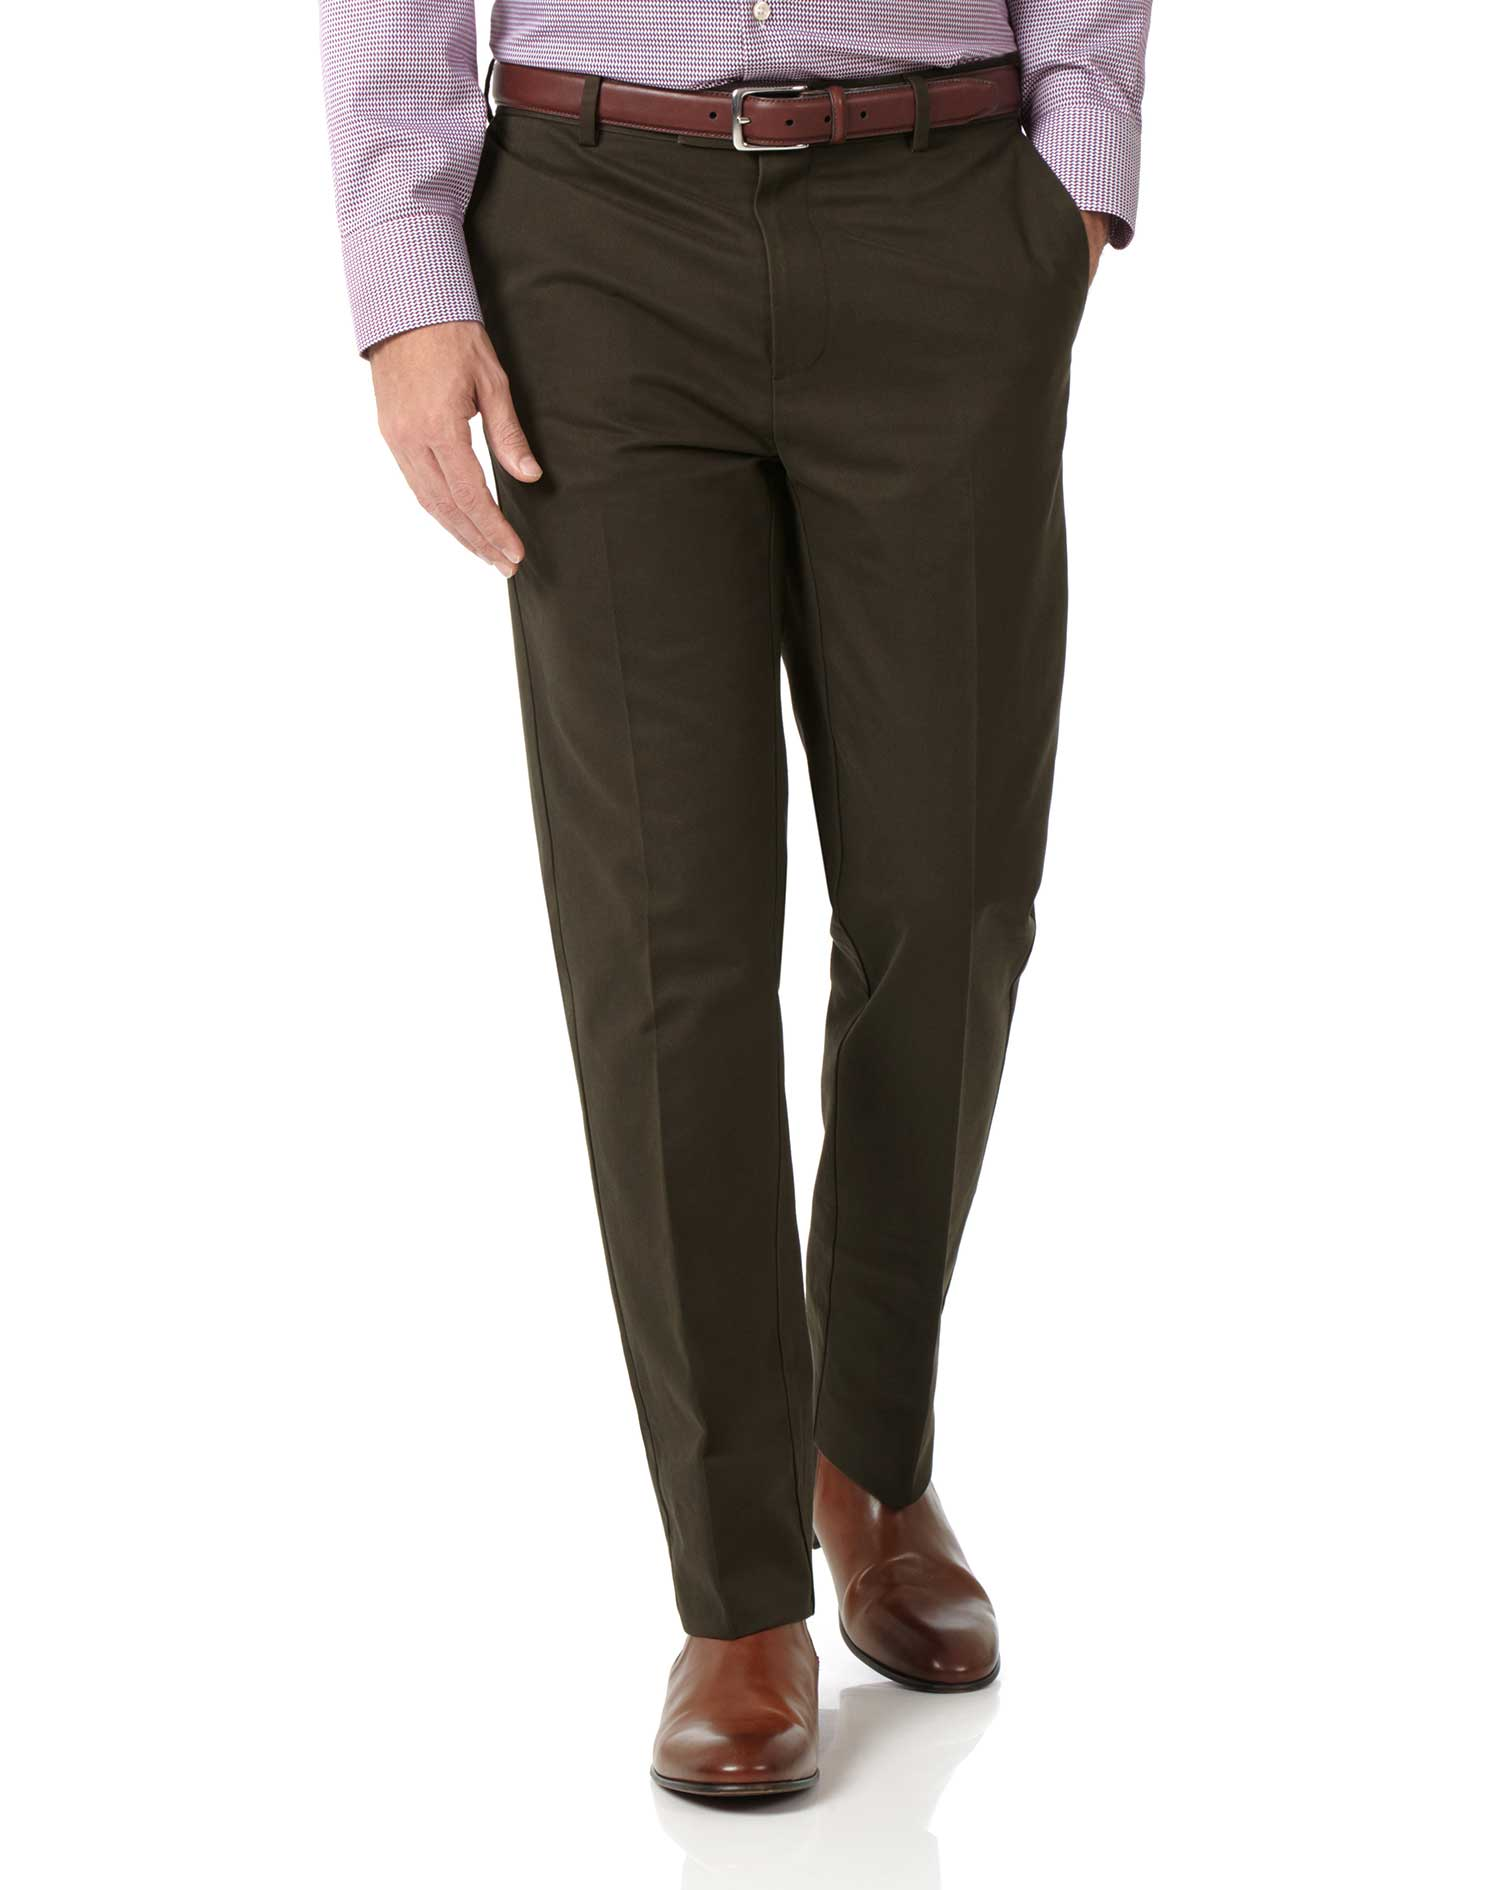 Brown Slim Fit Flat Front Non-Iron Cotton Chino Trousers Size W38 L32 by Charles Tyrwhitt